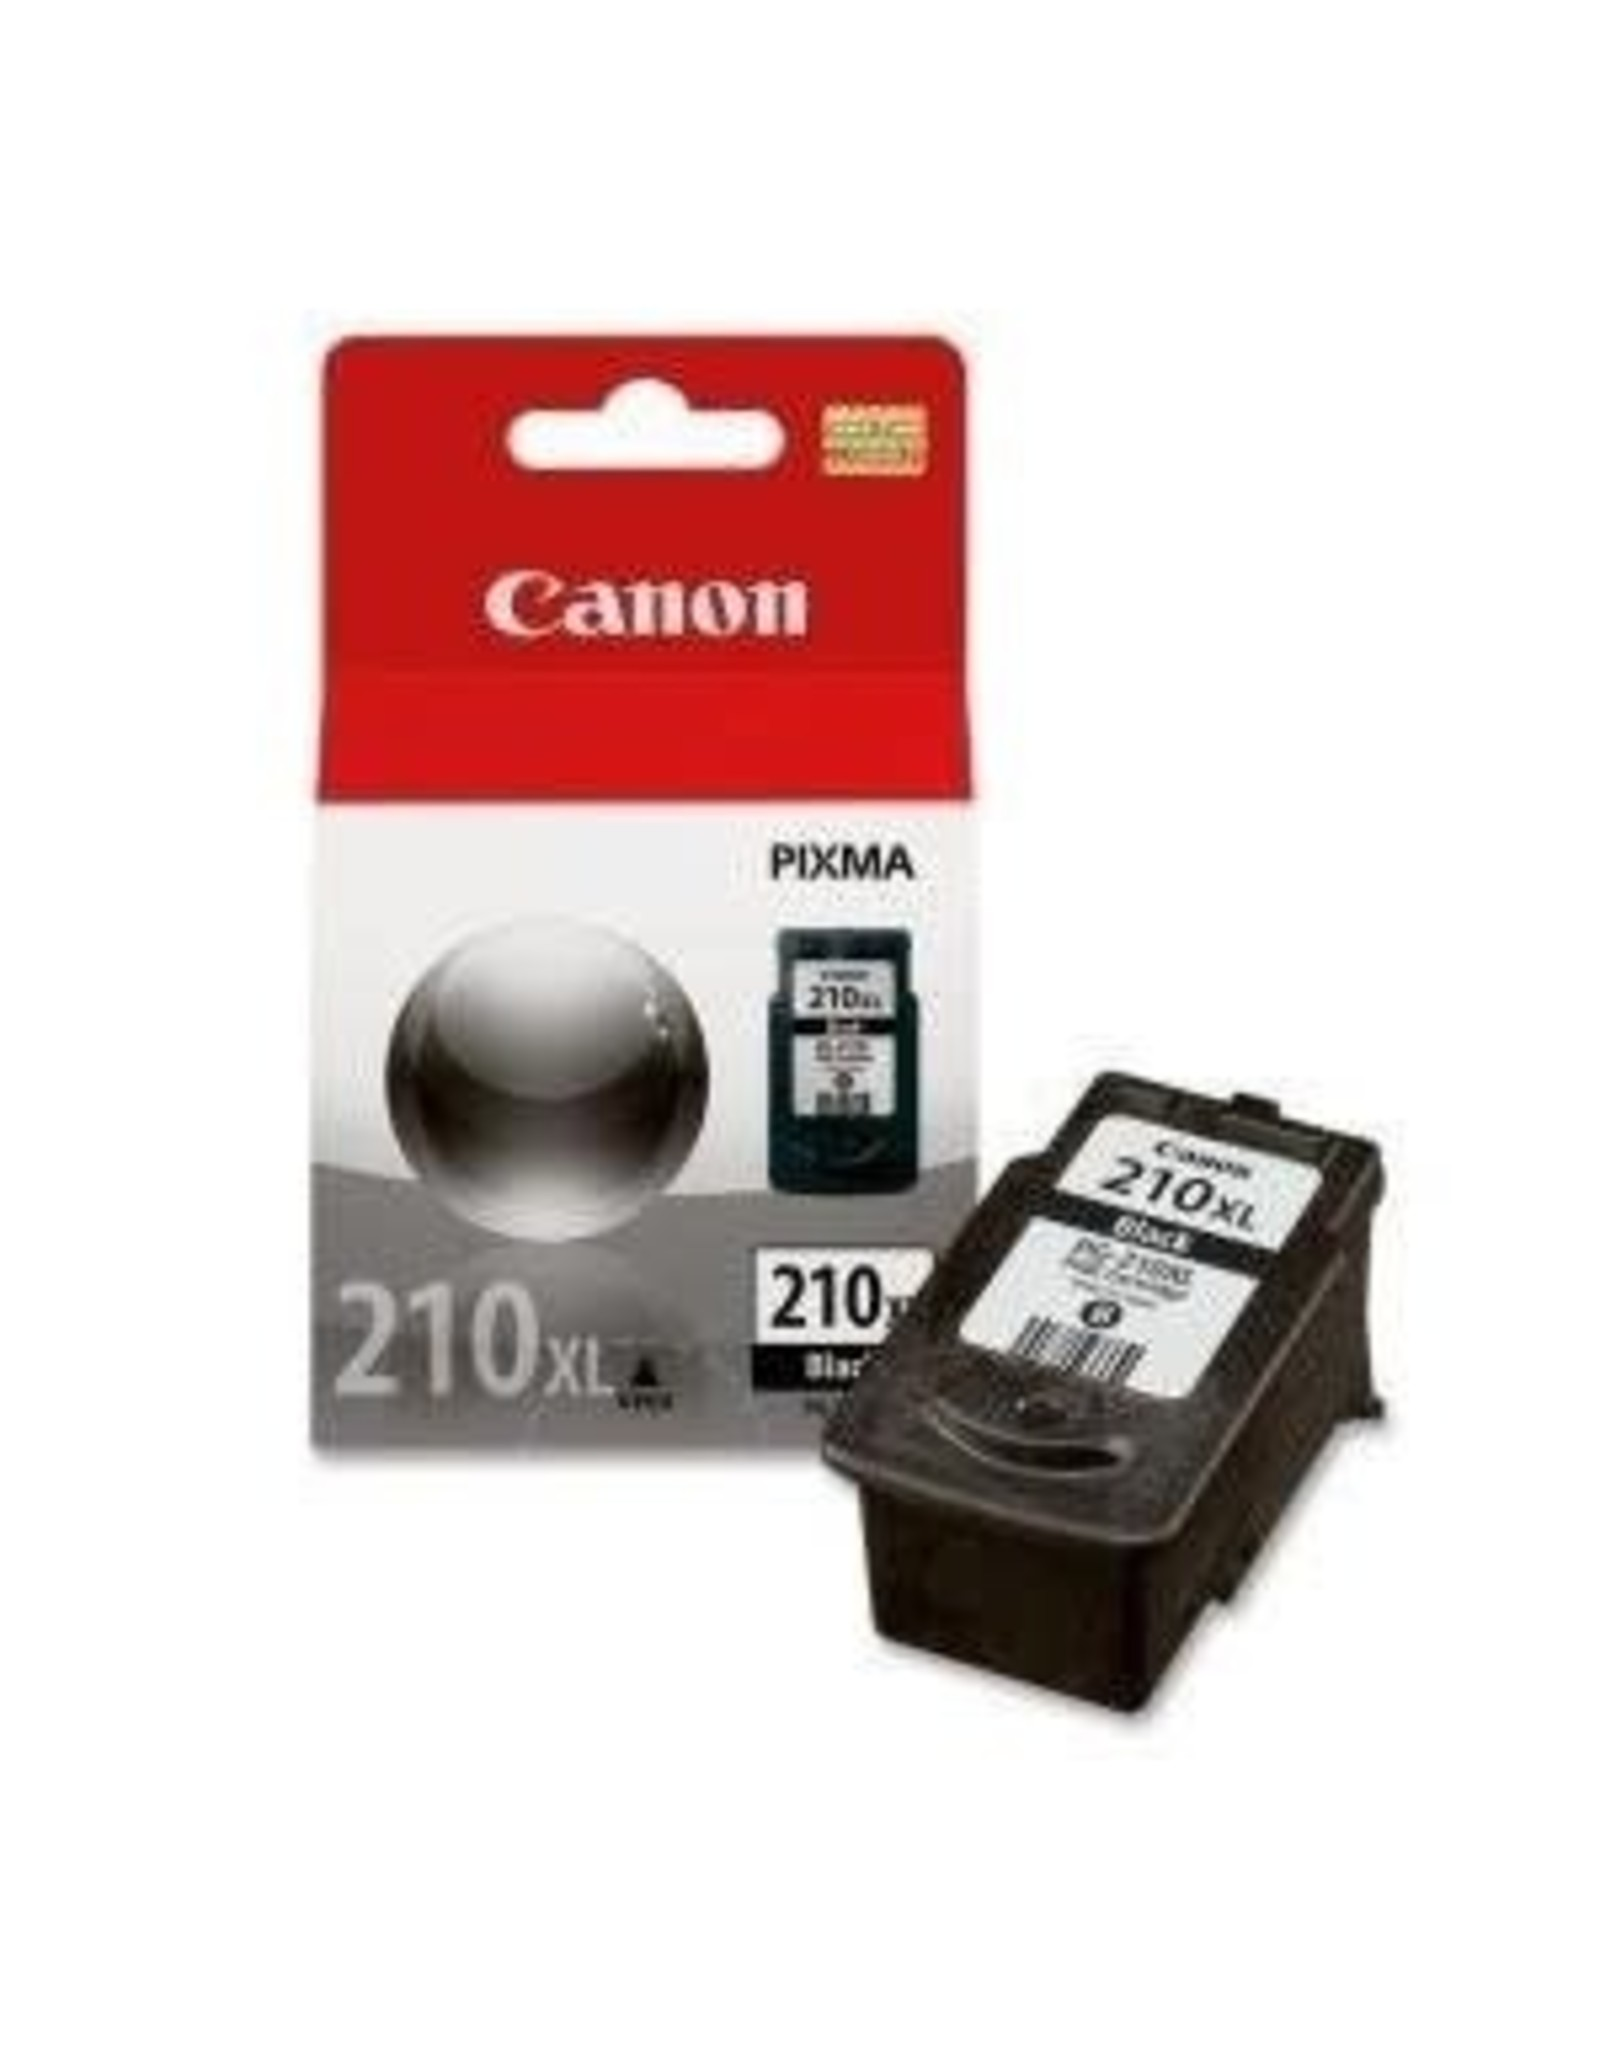 Canon INKJET CARTRIDGE-CANON #PG210XL BLACK HIGH YIELD